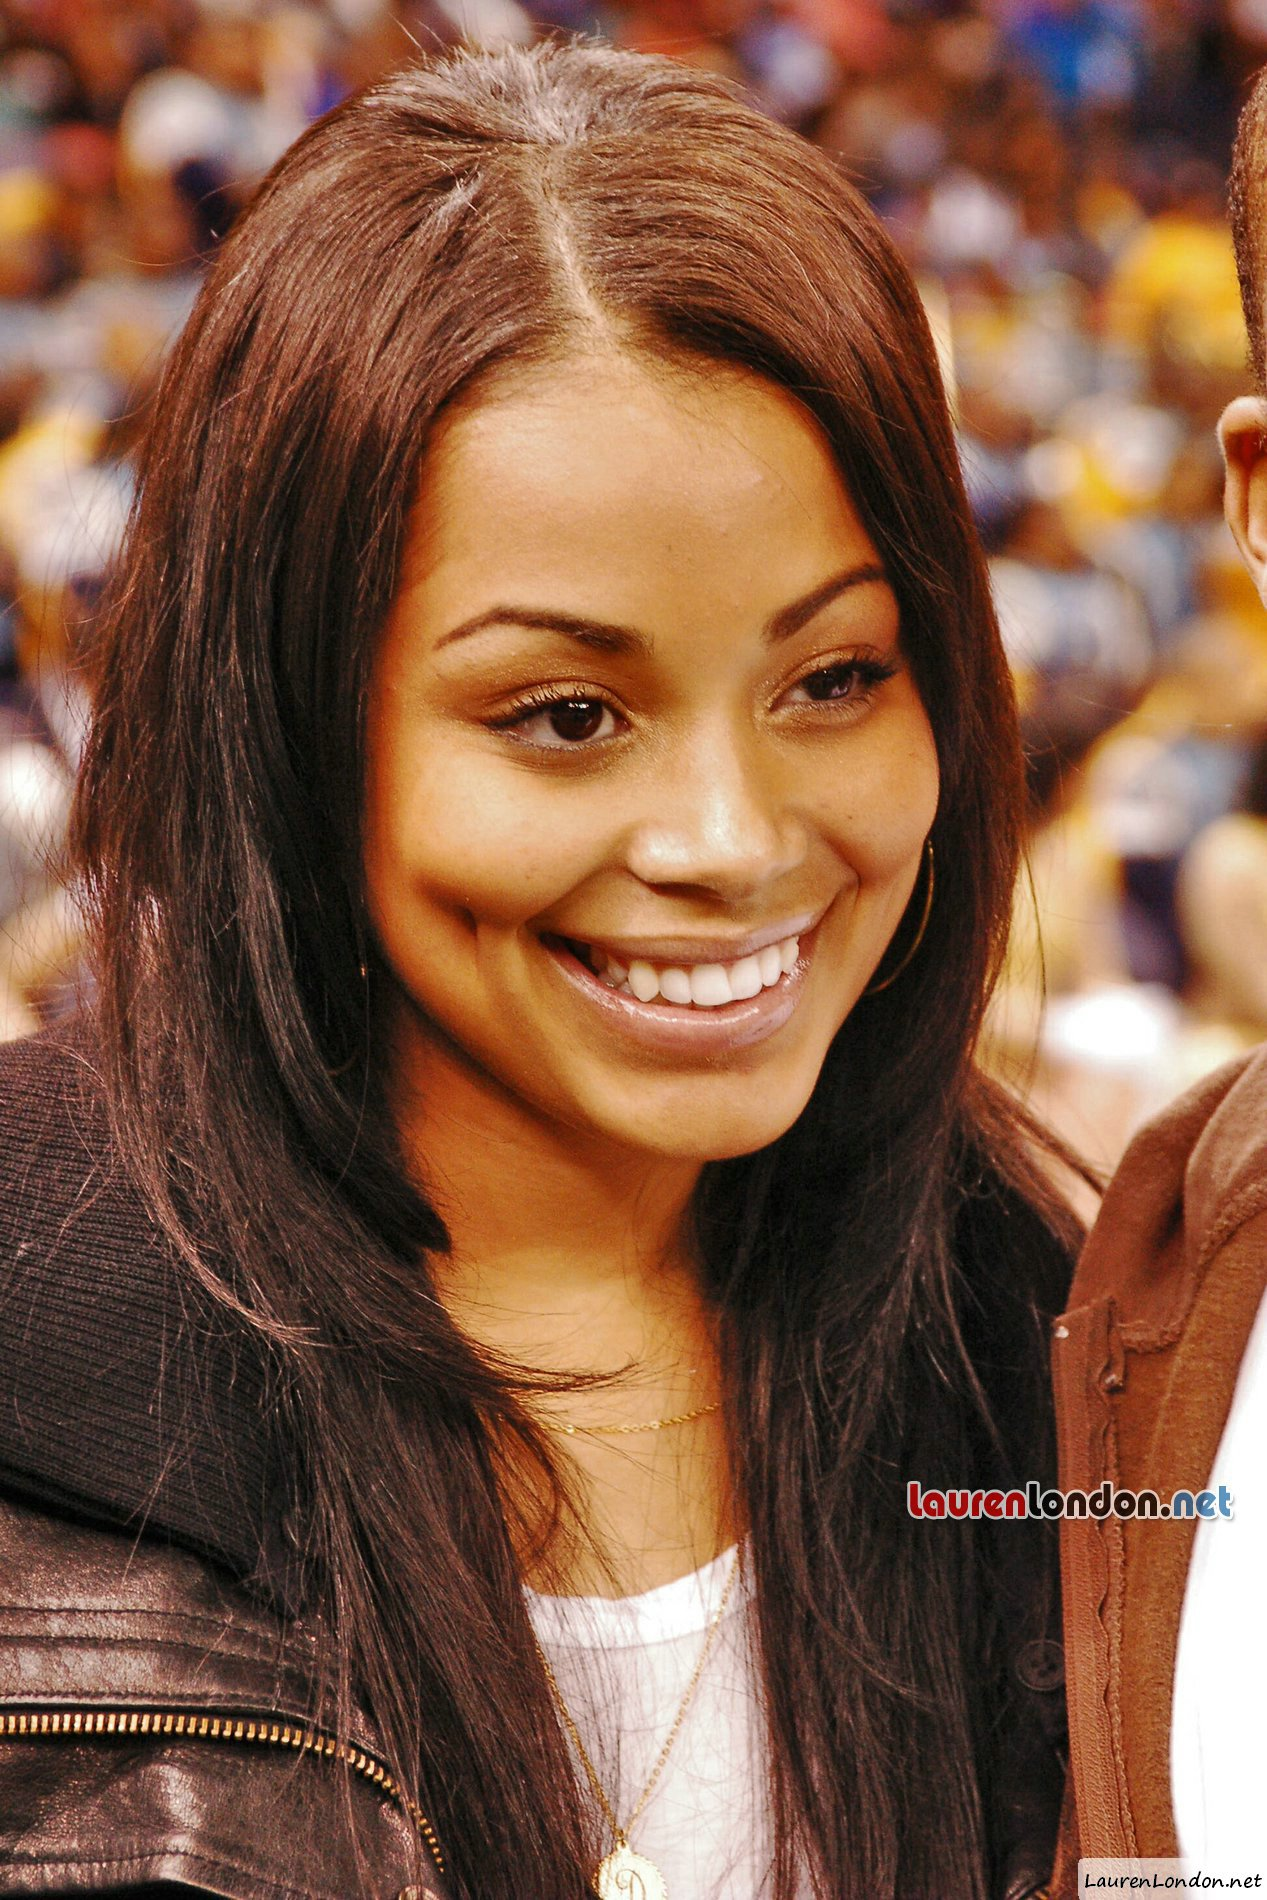 Lauren london dating in Sydney